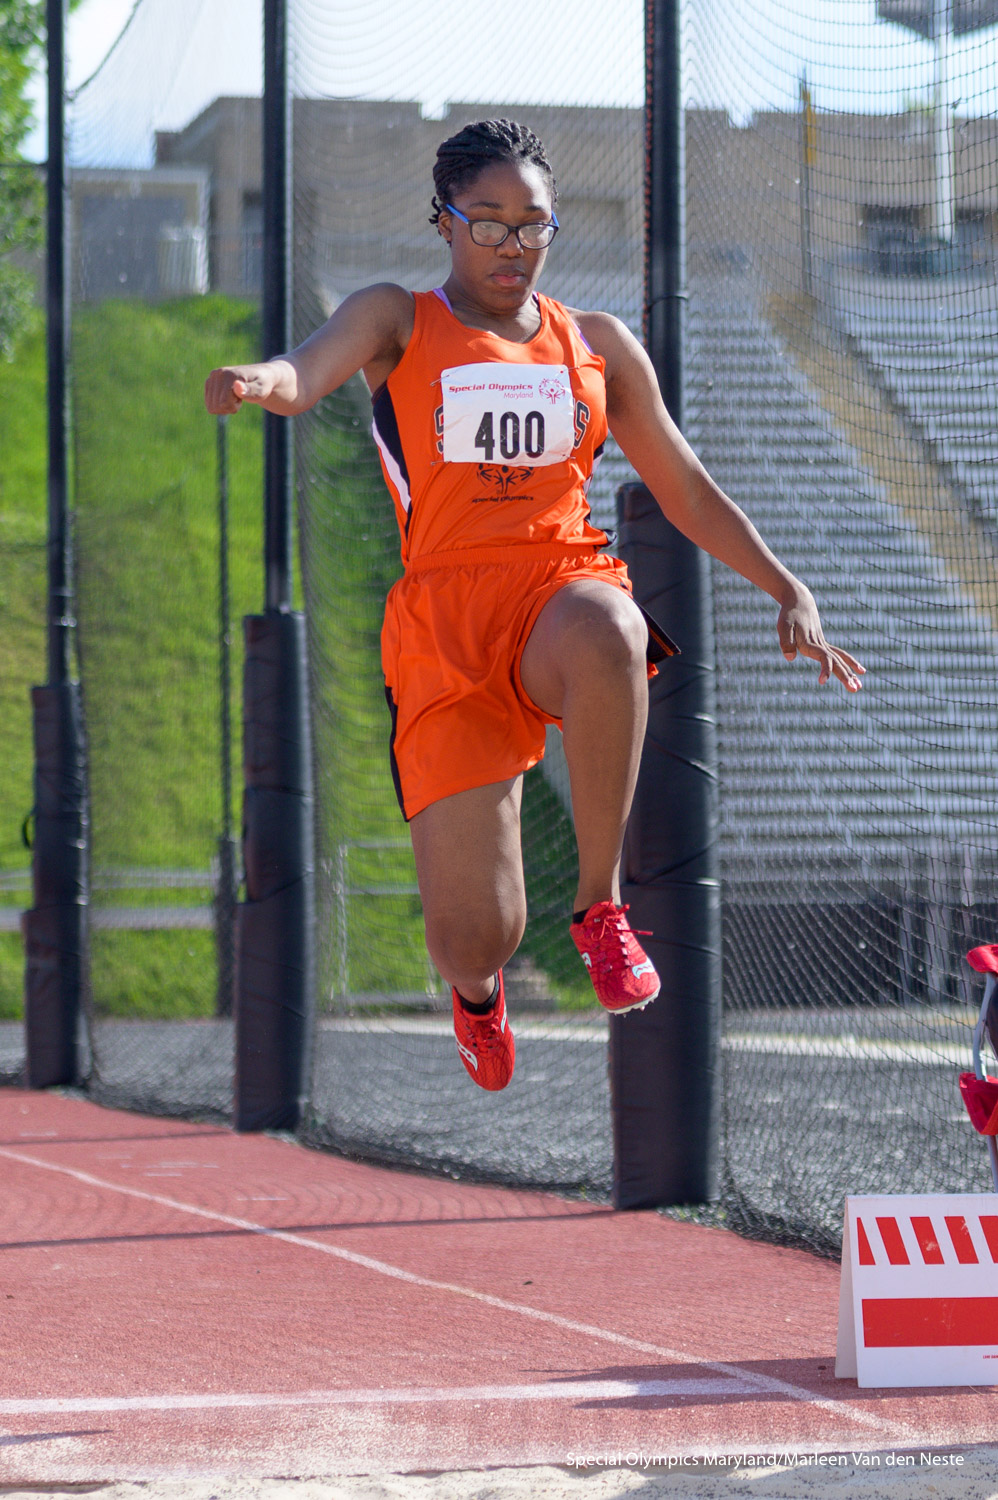 Athlete giving it her very best at the long jump event at Unitas Stadium, Towson University, MD on Sunday, June 9, 2019.